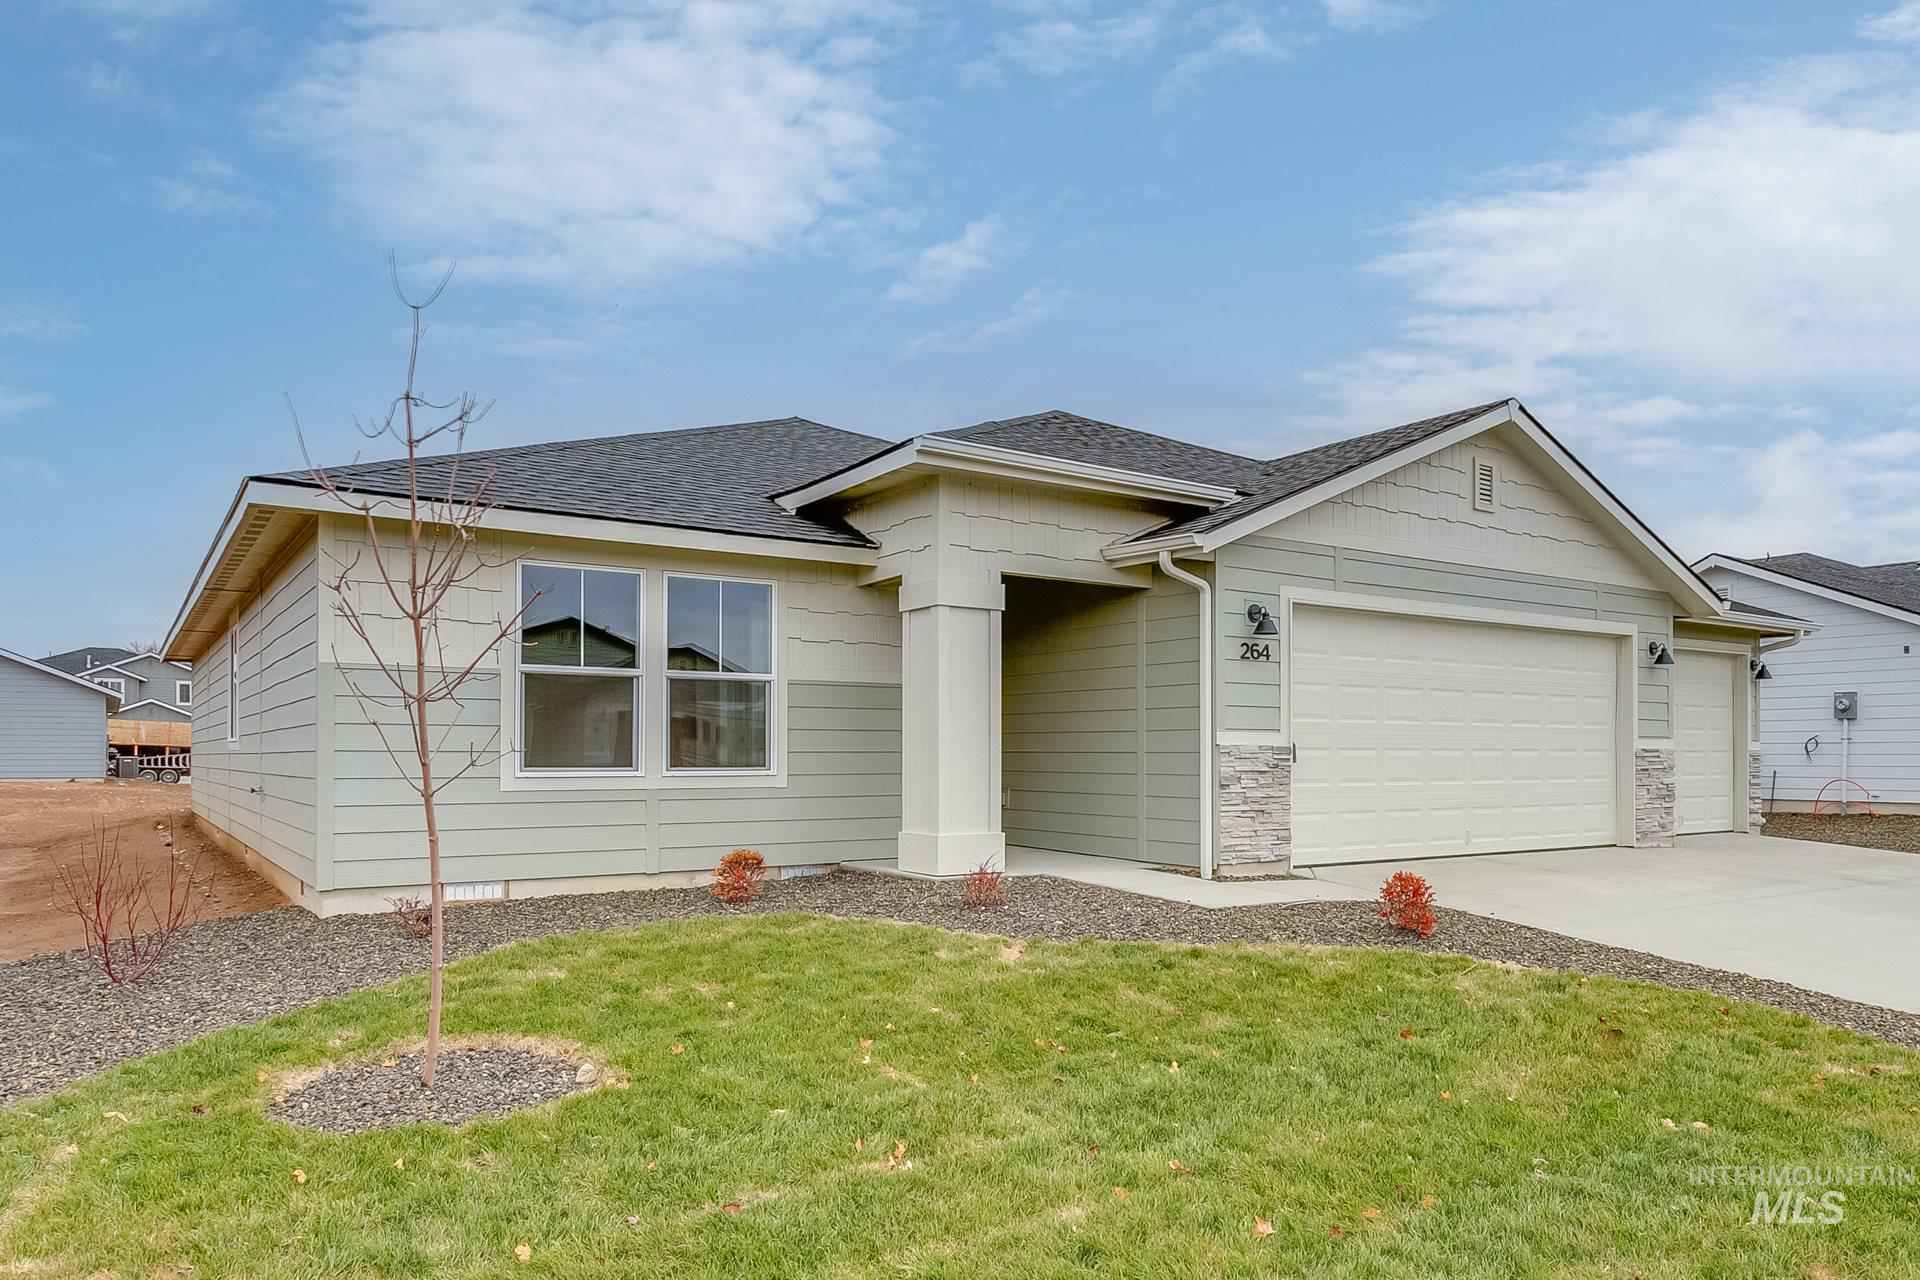 11309 W Viola St., Nampa, Idaho 83651, 3 Bedrooms, 2 Bathrooms, Residential For Sale, Price $419,344, 98787501